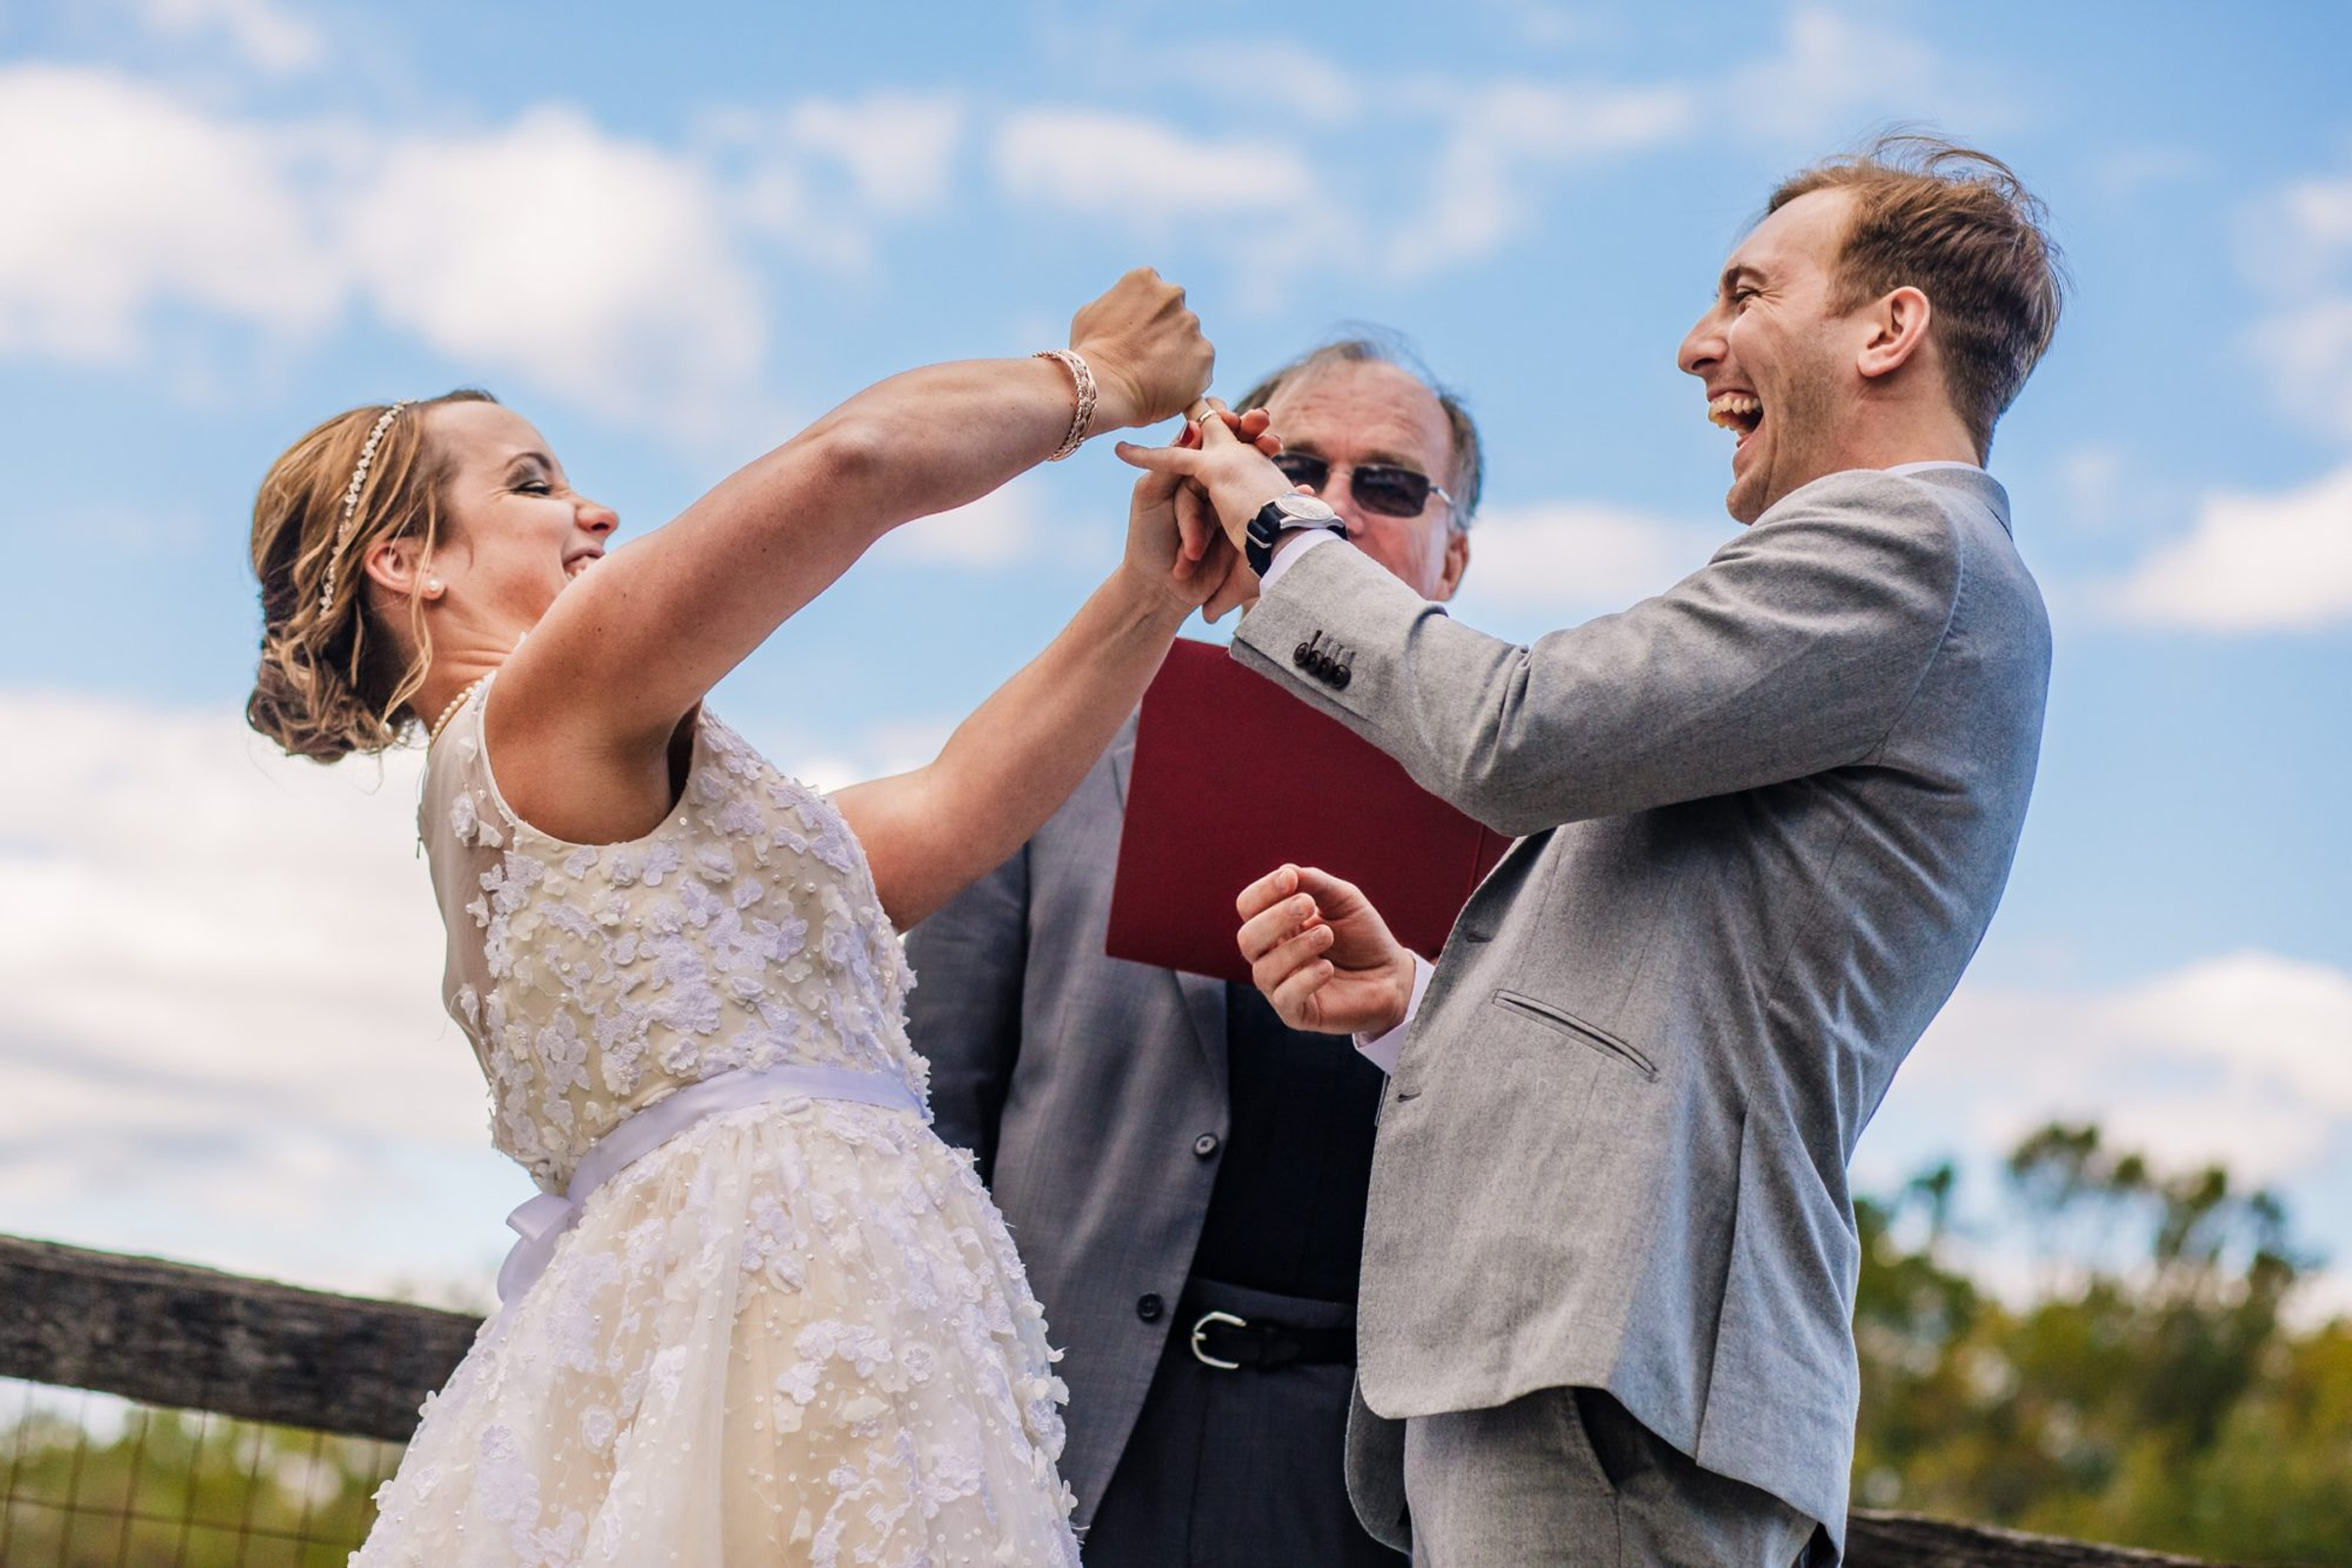 Bride and groom cheering at ceremony - photo by Photography by Brea